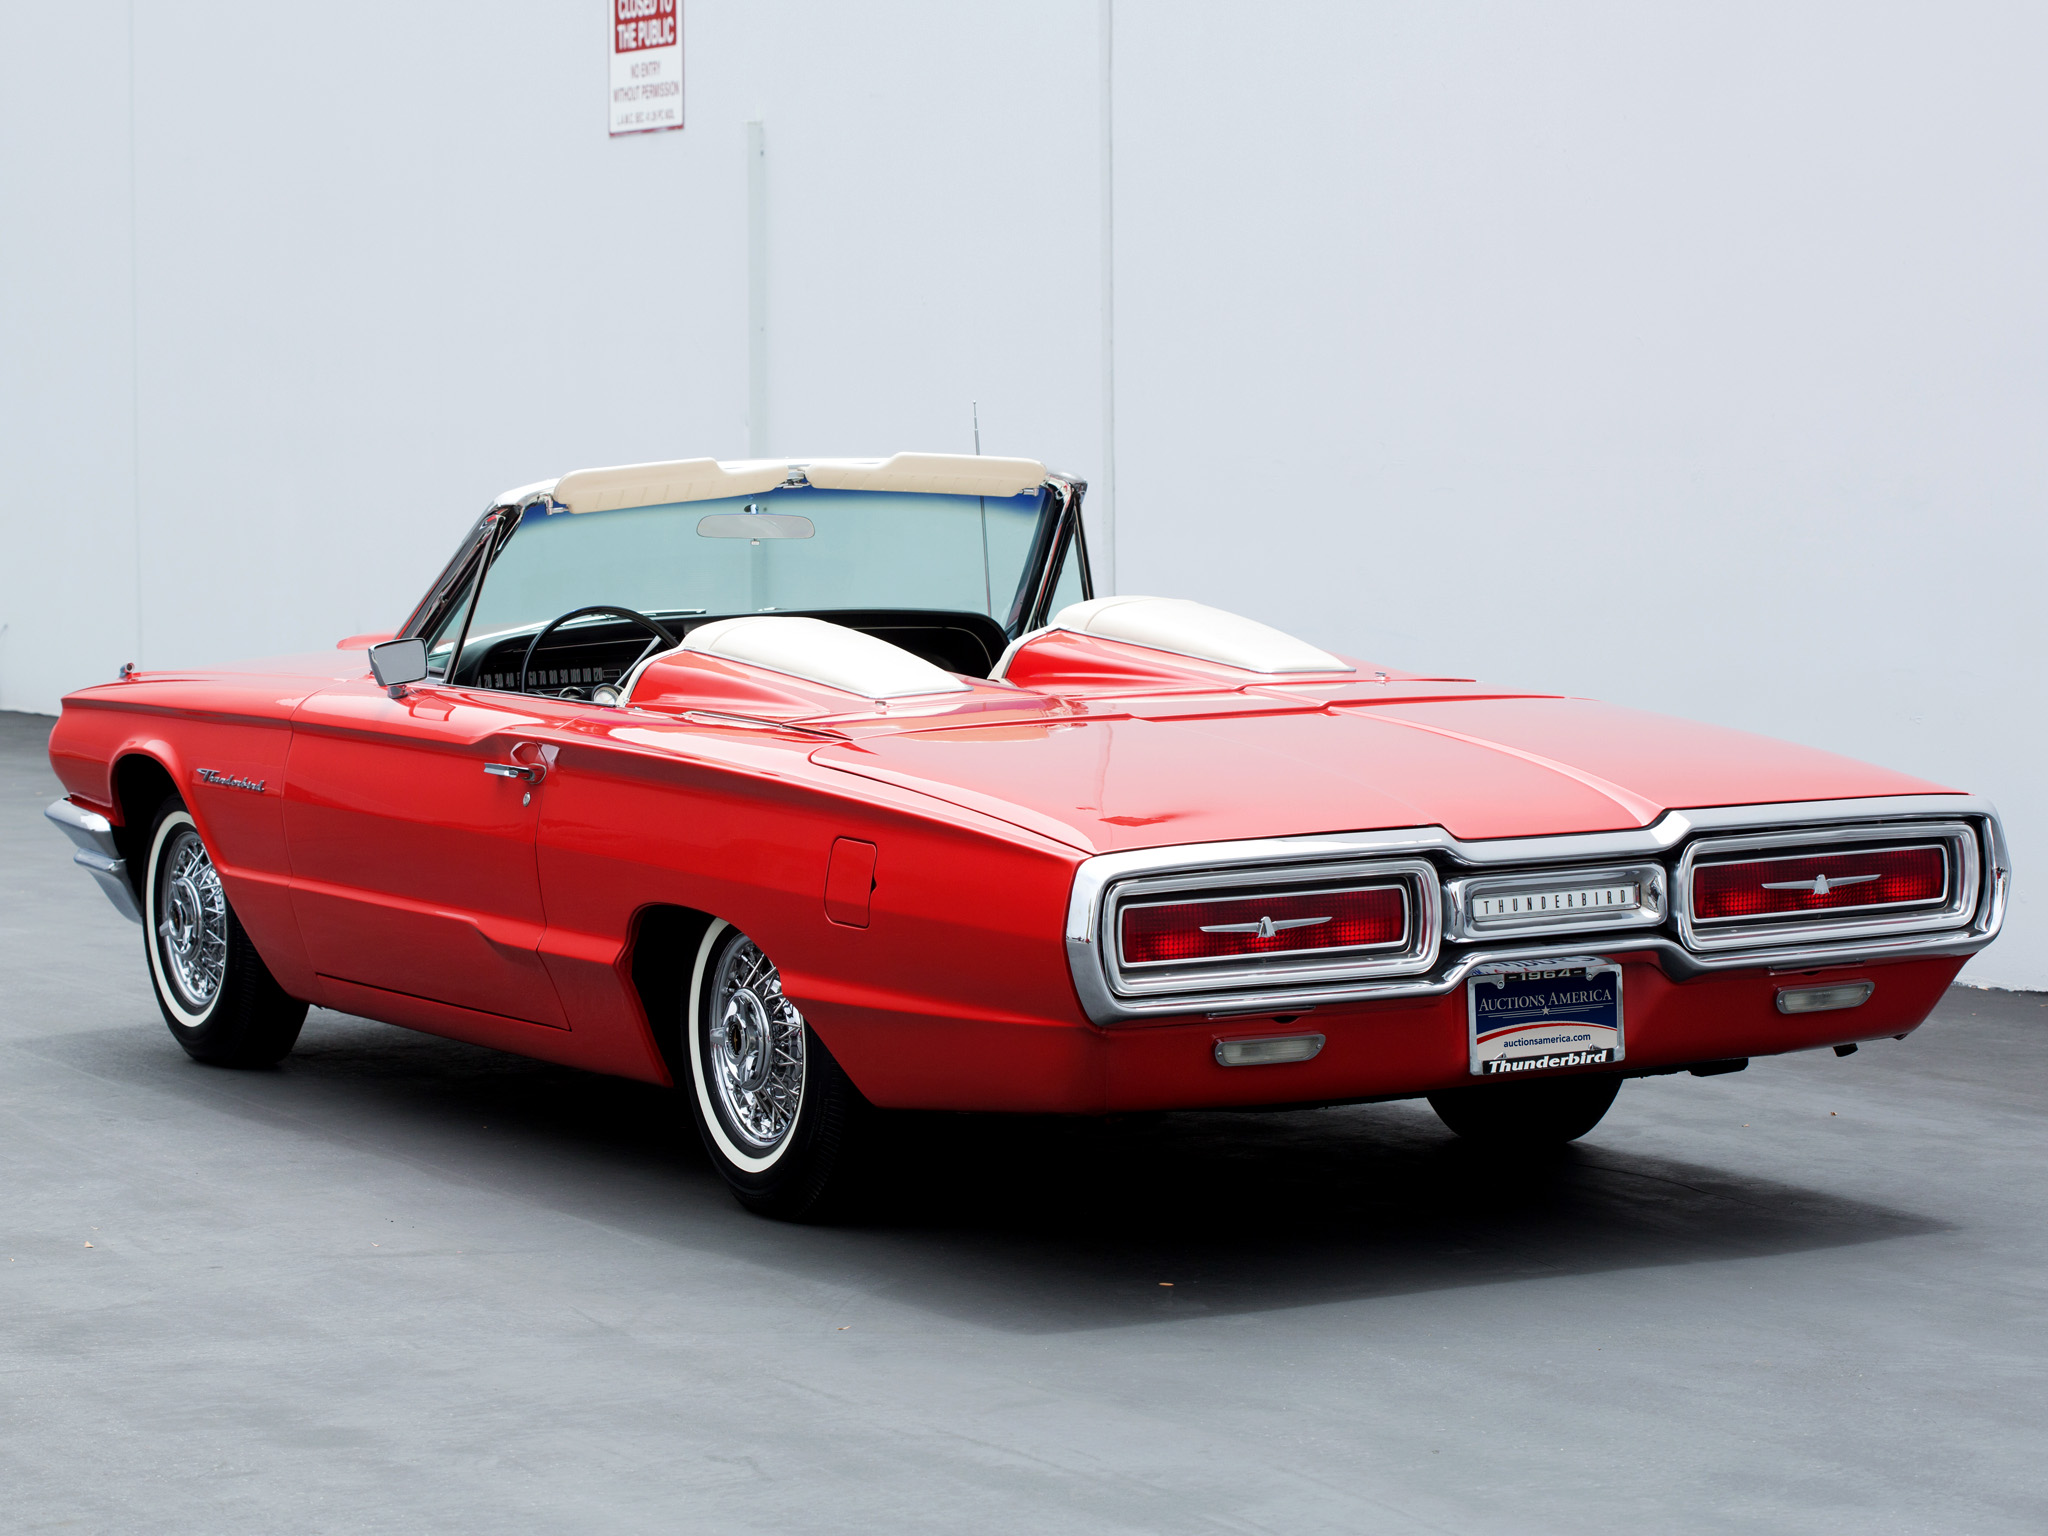 The red convertible essay